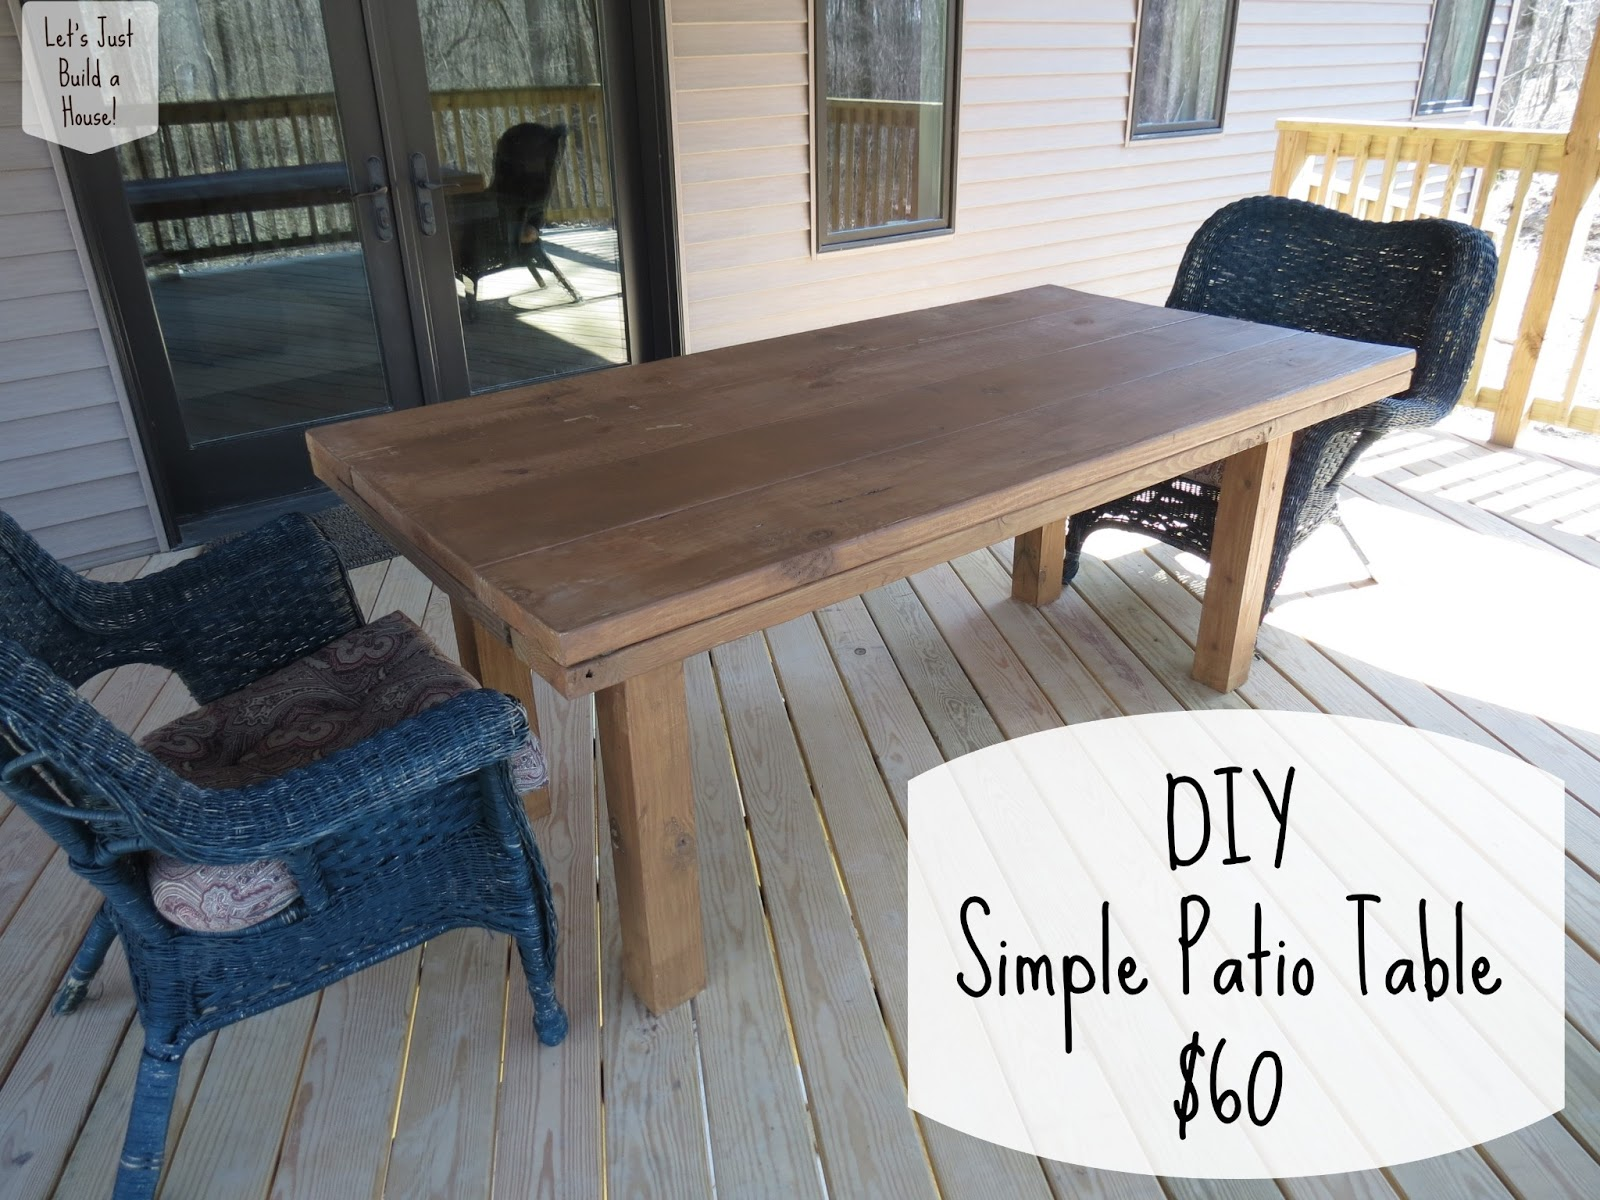 Let's Just Build a House!: DIY Simple Patio Table Details